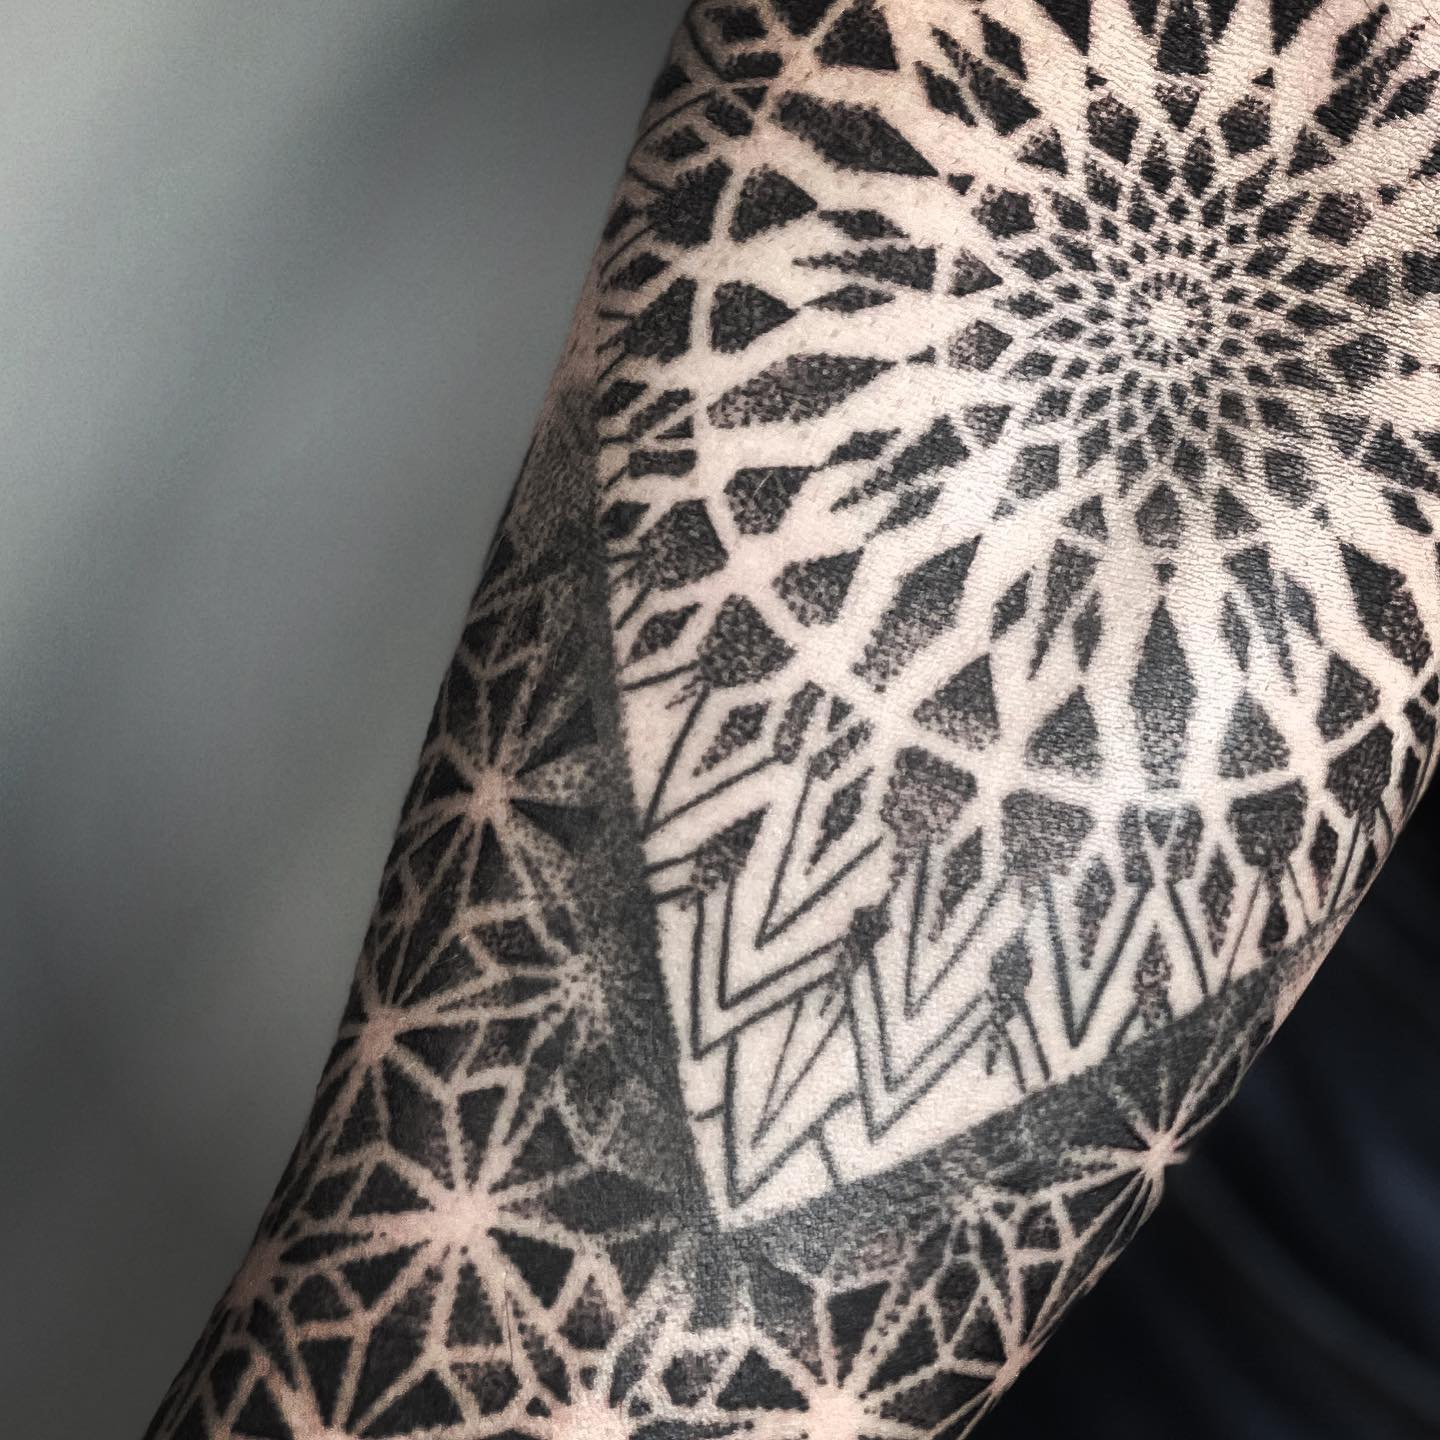 Continuation for Craig today. I hope u enjoying your weekend @studioxiiigallery @studioxiiigallery studioxiii dotwork mandala mandalatattoo dotworktattoo